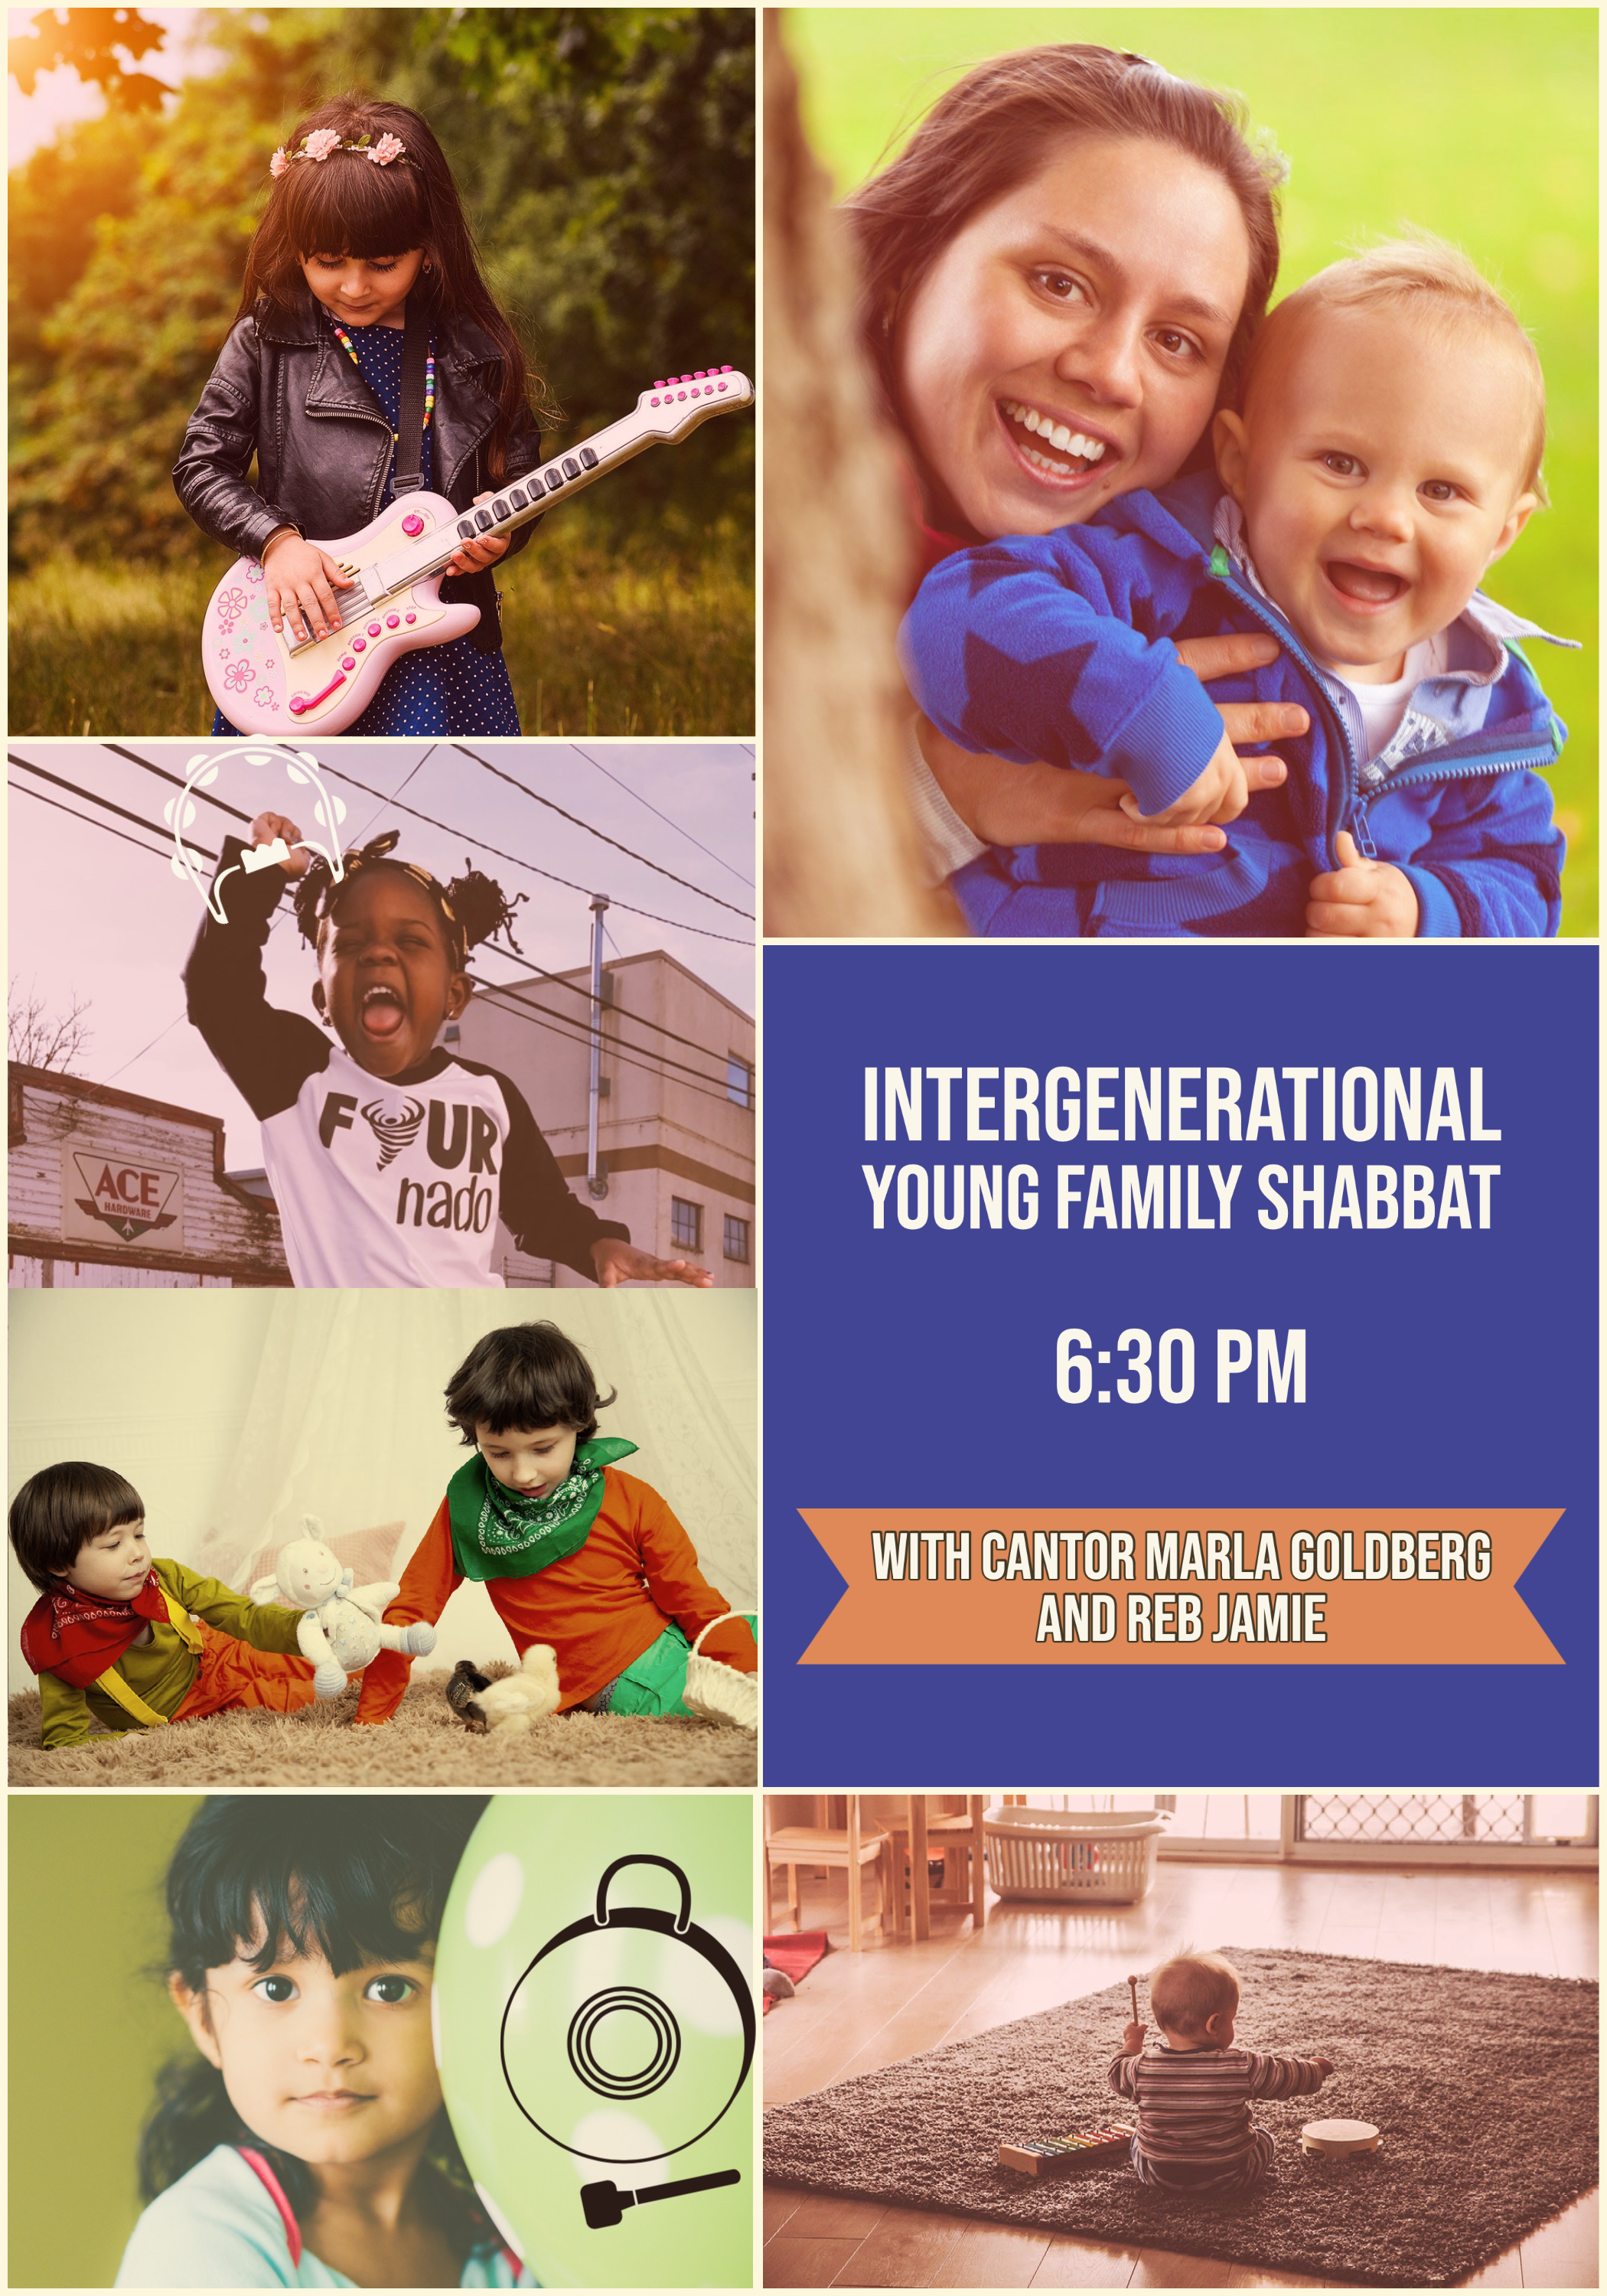 Intergenerational Young Family Shabbat 1st and 3rd Fridays at 6:30 pm